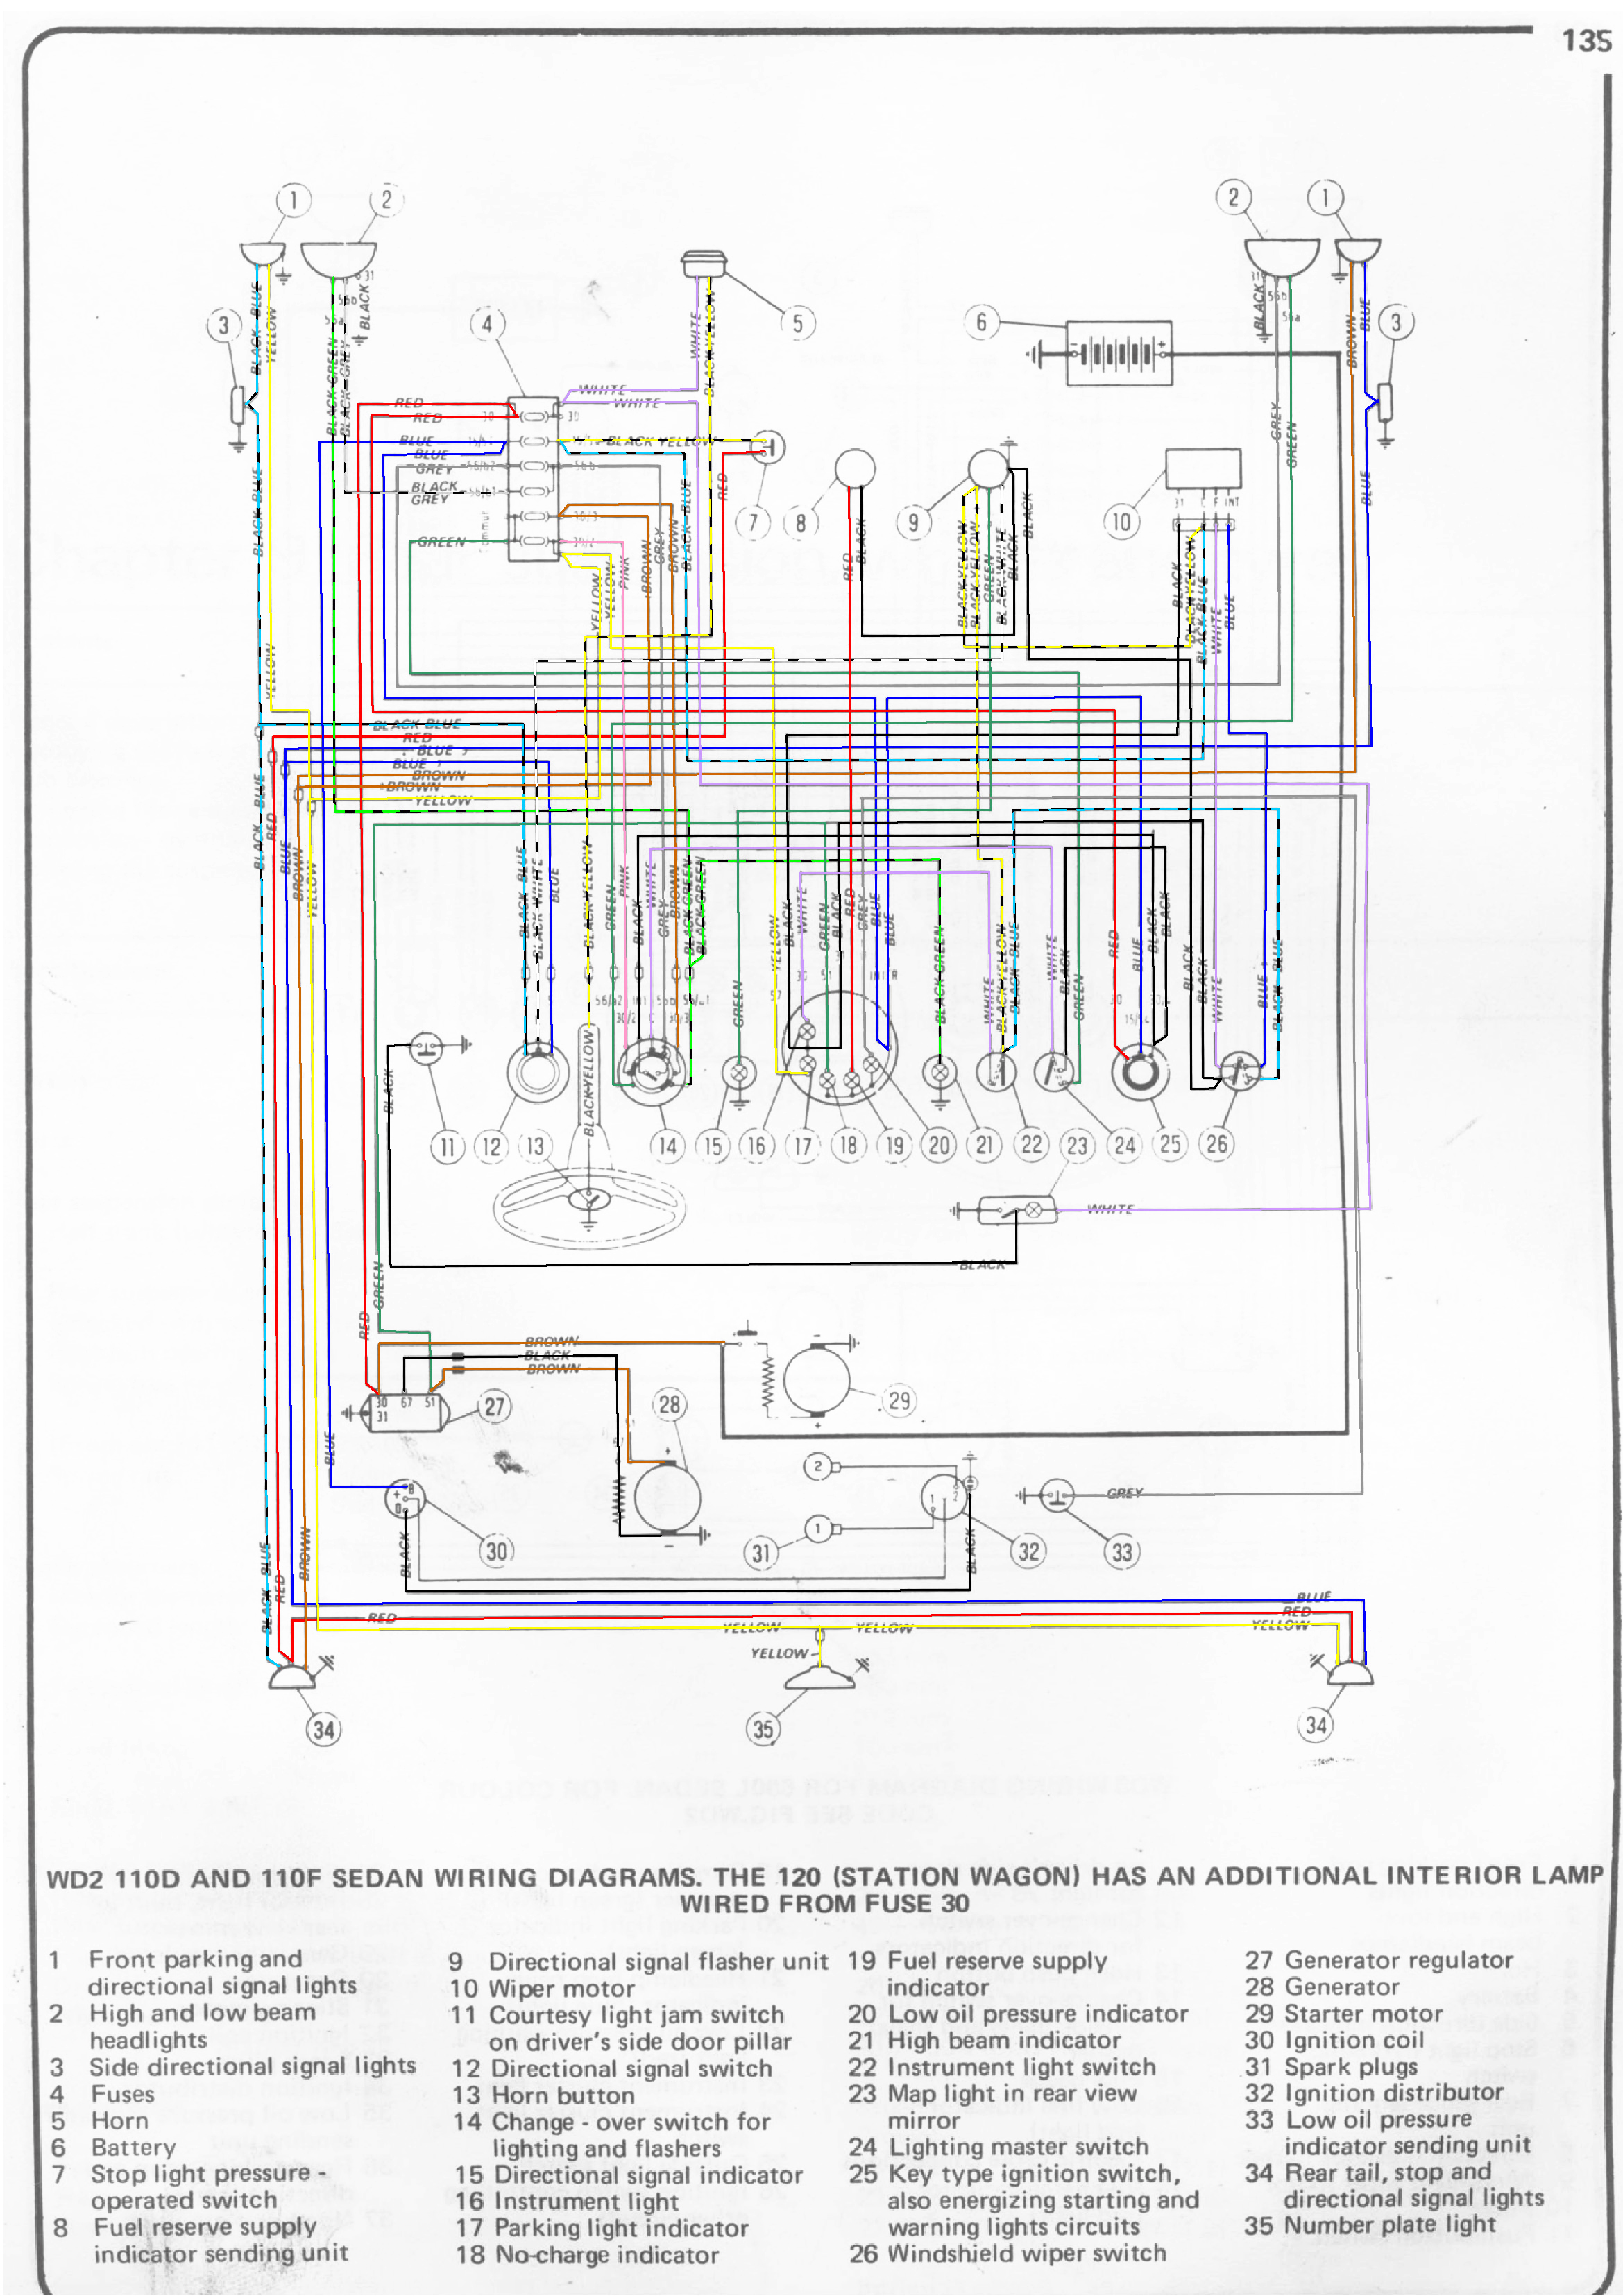 fiat 500l wiring diagram wiring diagrams schematics rh quizzable co fiat wiring diagrams fiat dino wiring diagram